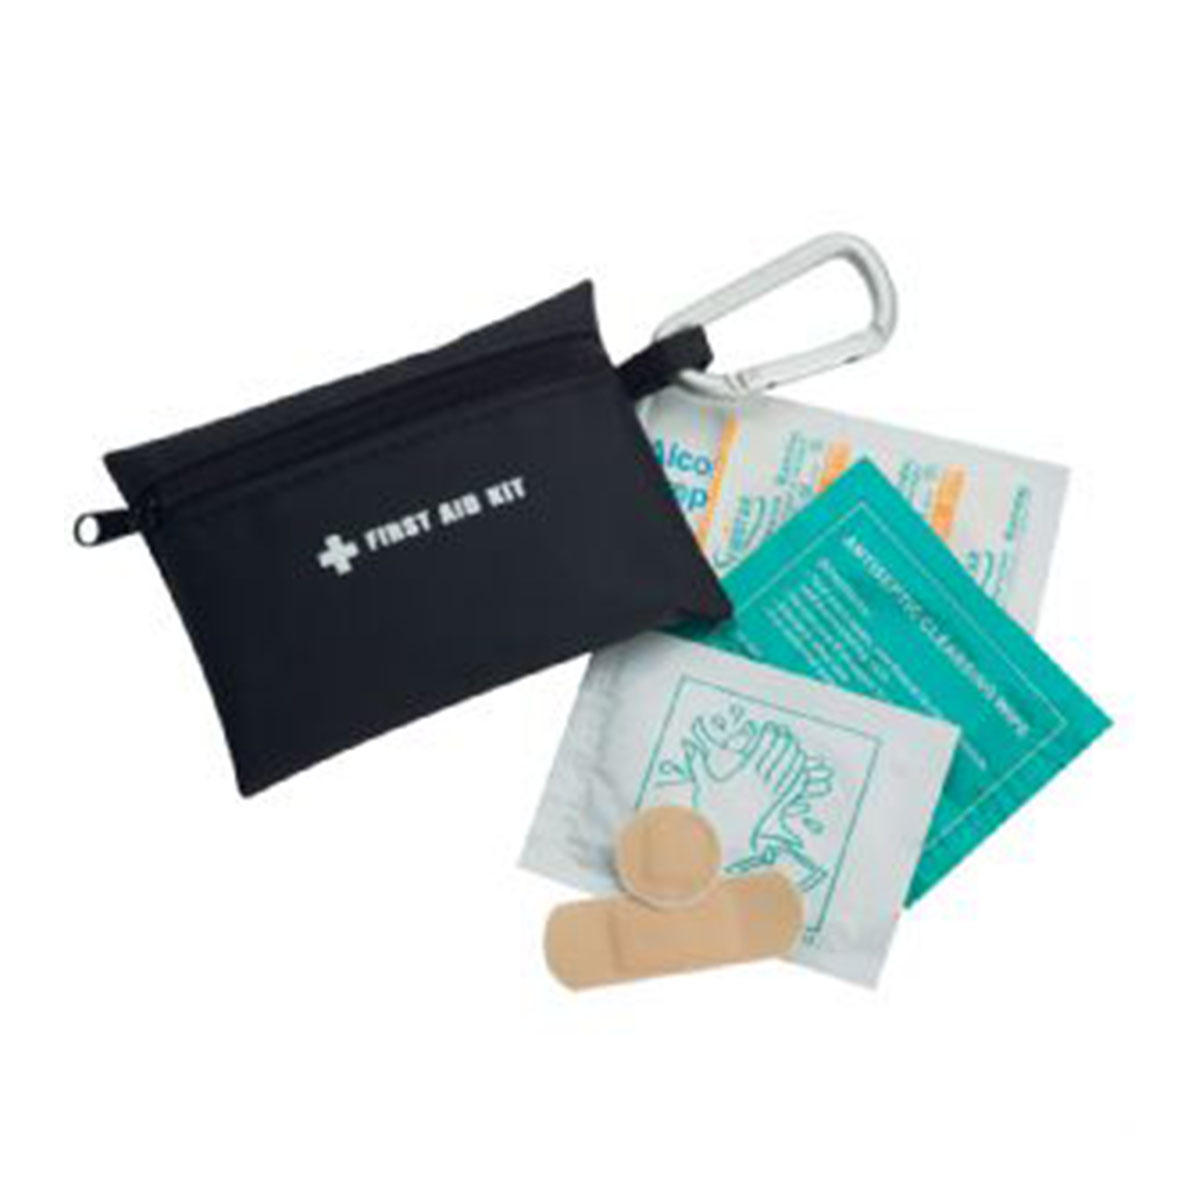 Purse Size First Aid Kit-Black with Silver Carabineer.